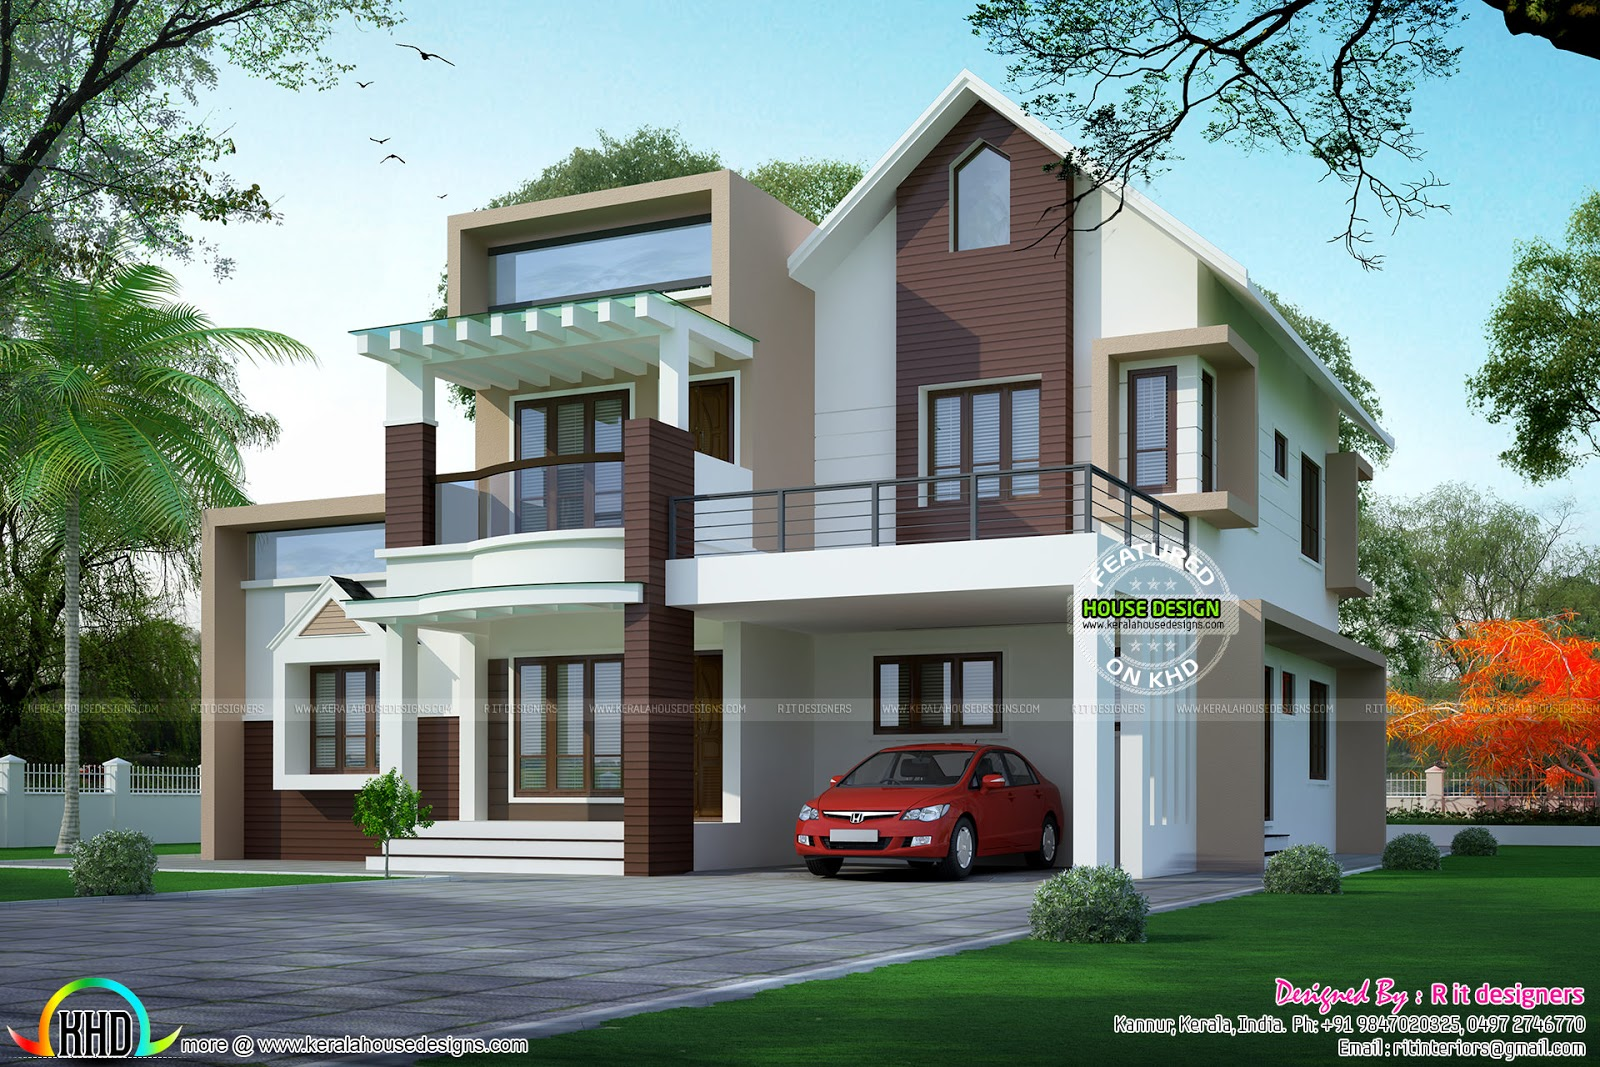 310 sq yd contemporary house mix sloping roof kerala for Contemporary home plans free